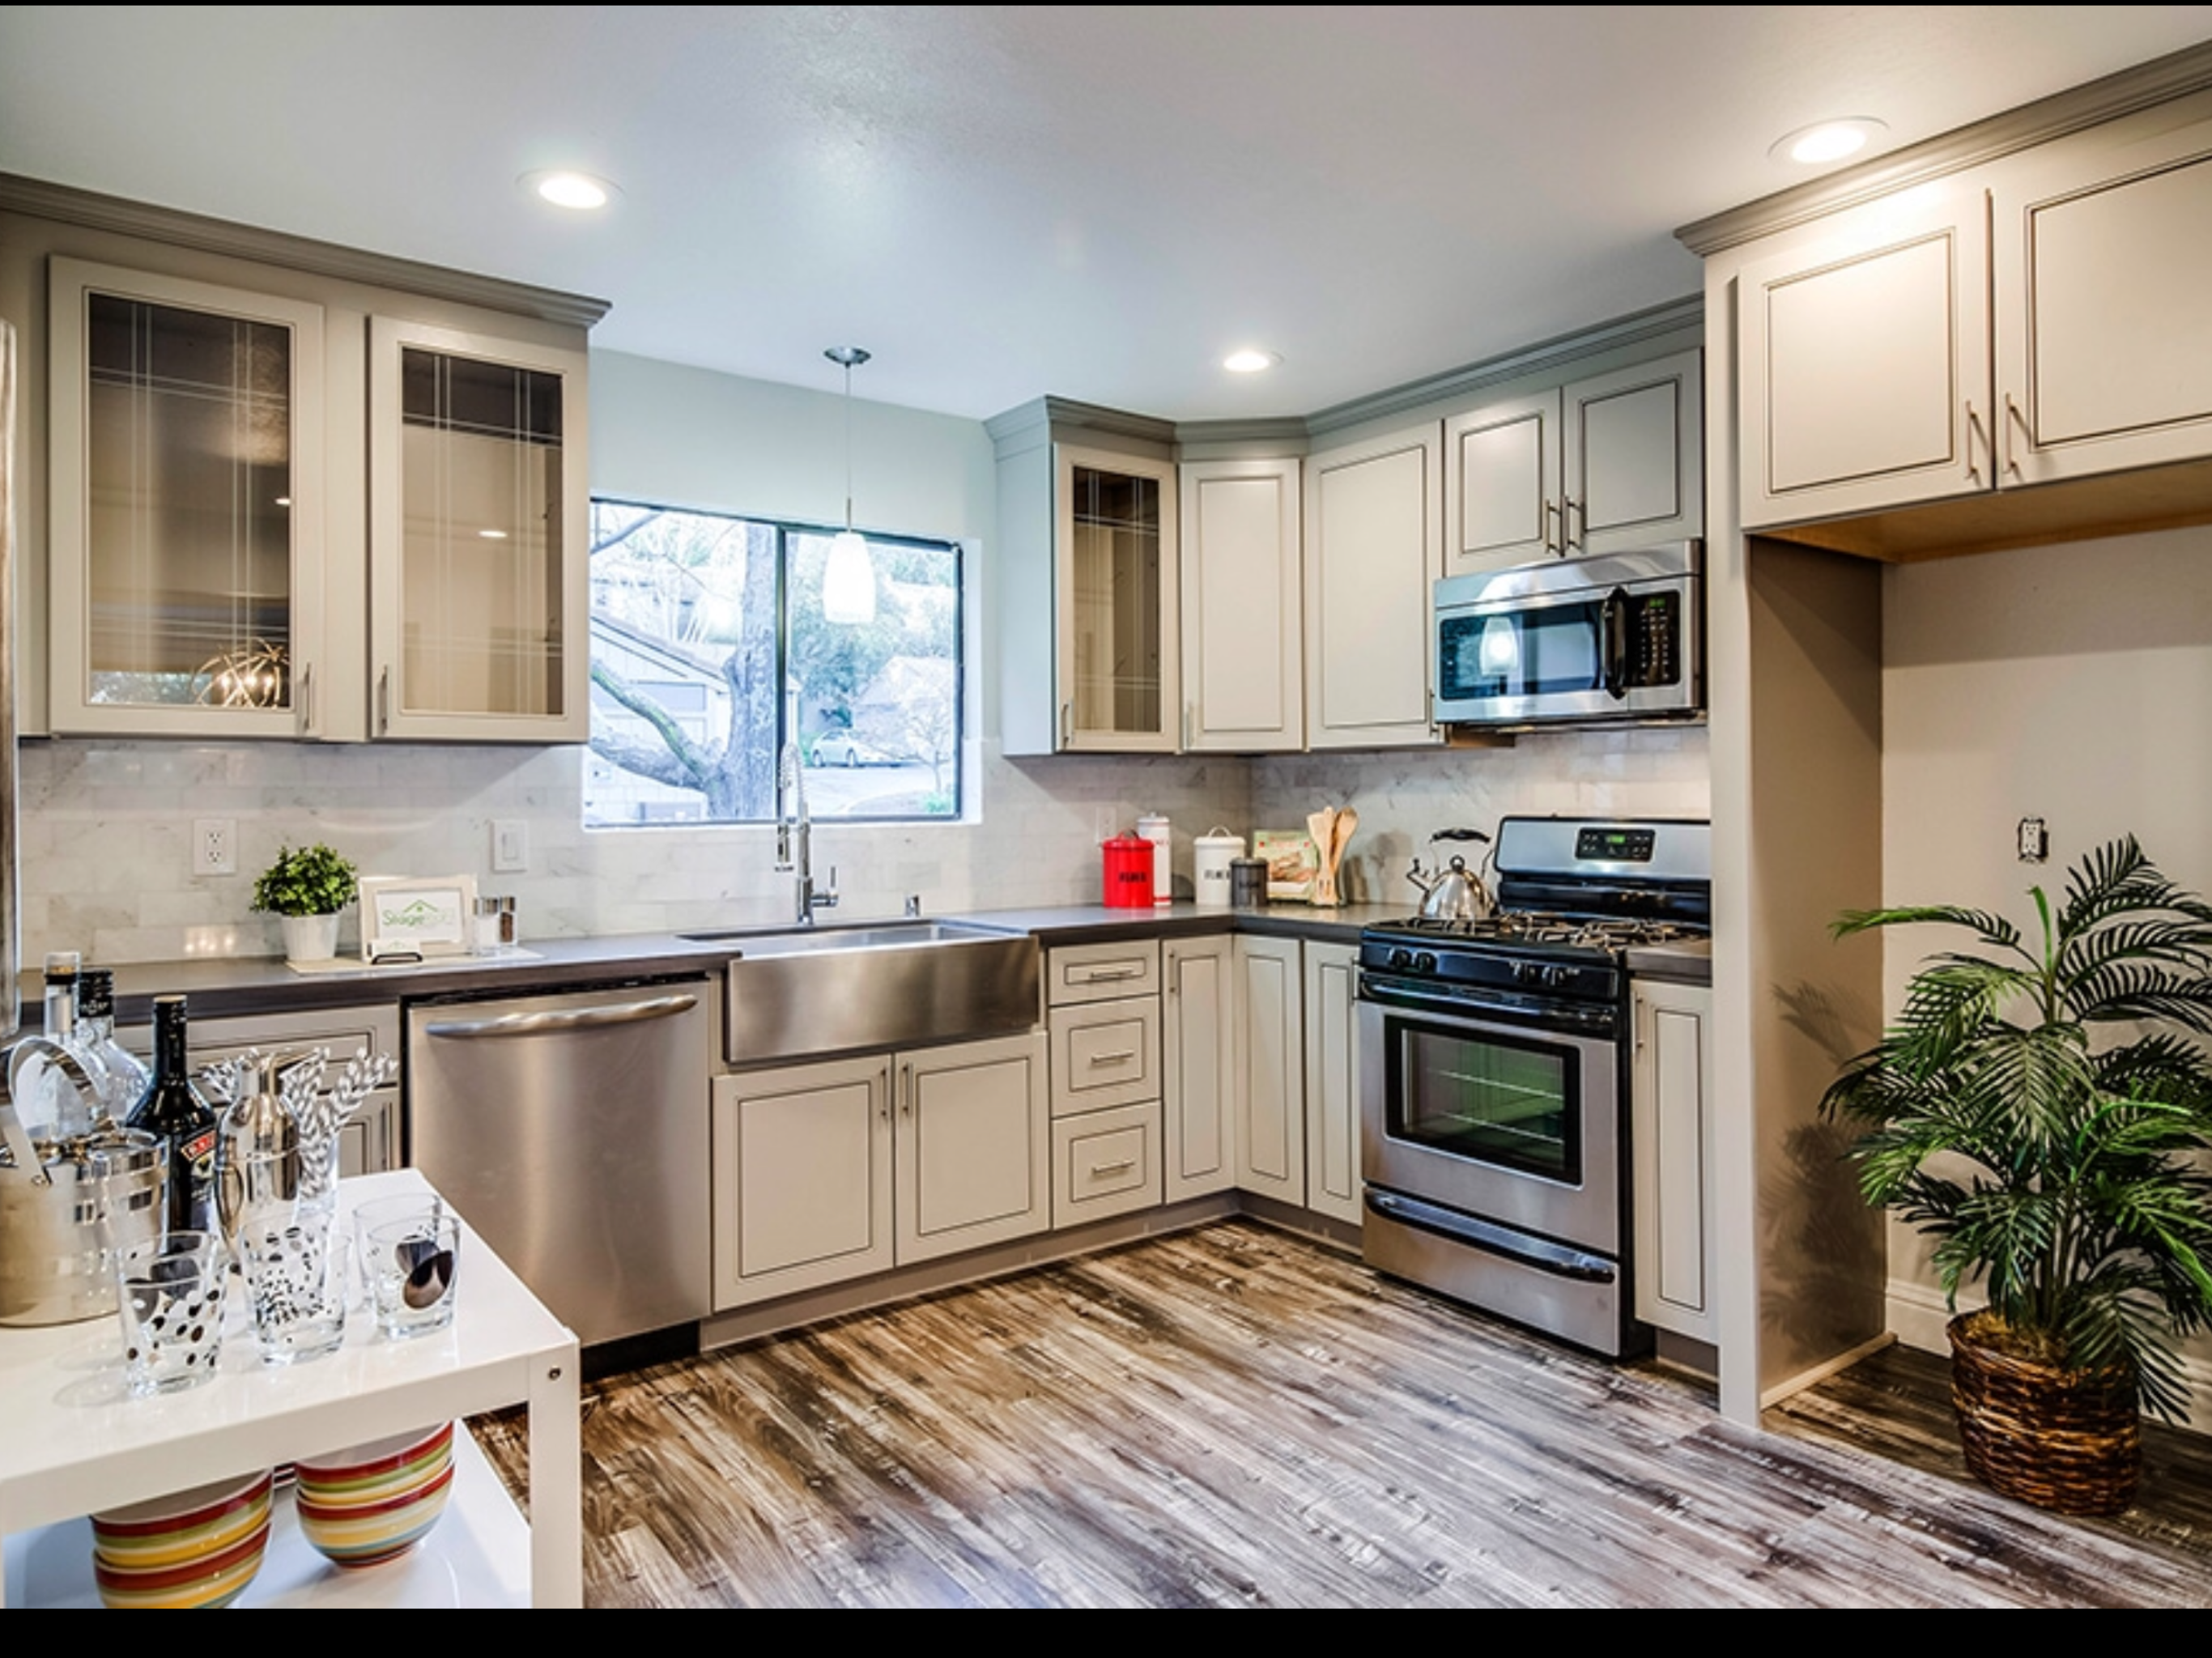 Idea by abc kitchens on Greige Maple Cabinets | Kitchen ... on Countertop Colors For Maple Cabinets  id=94574